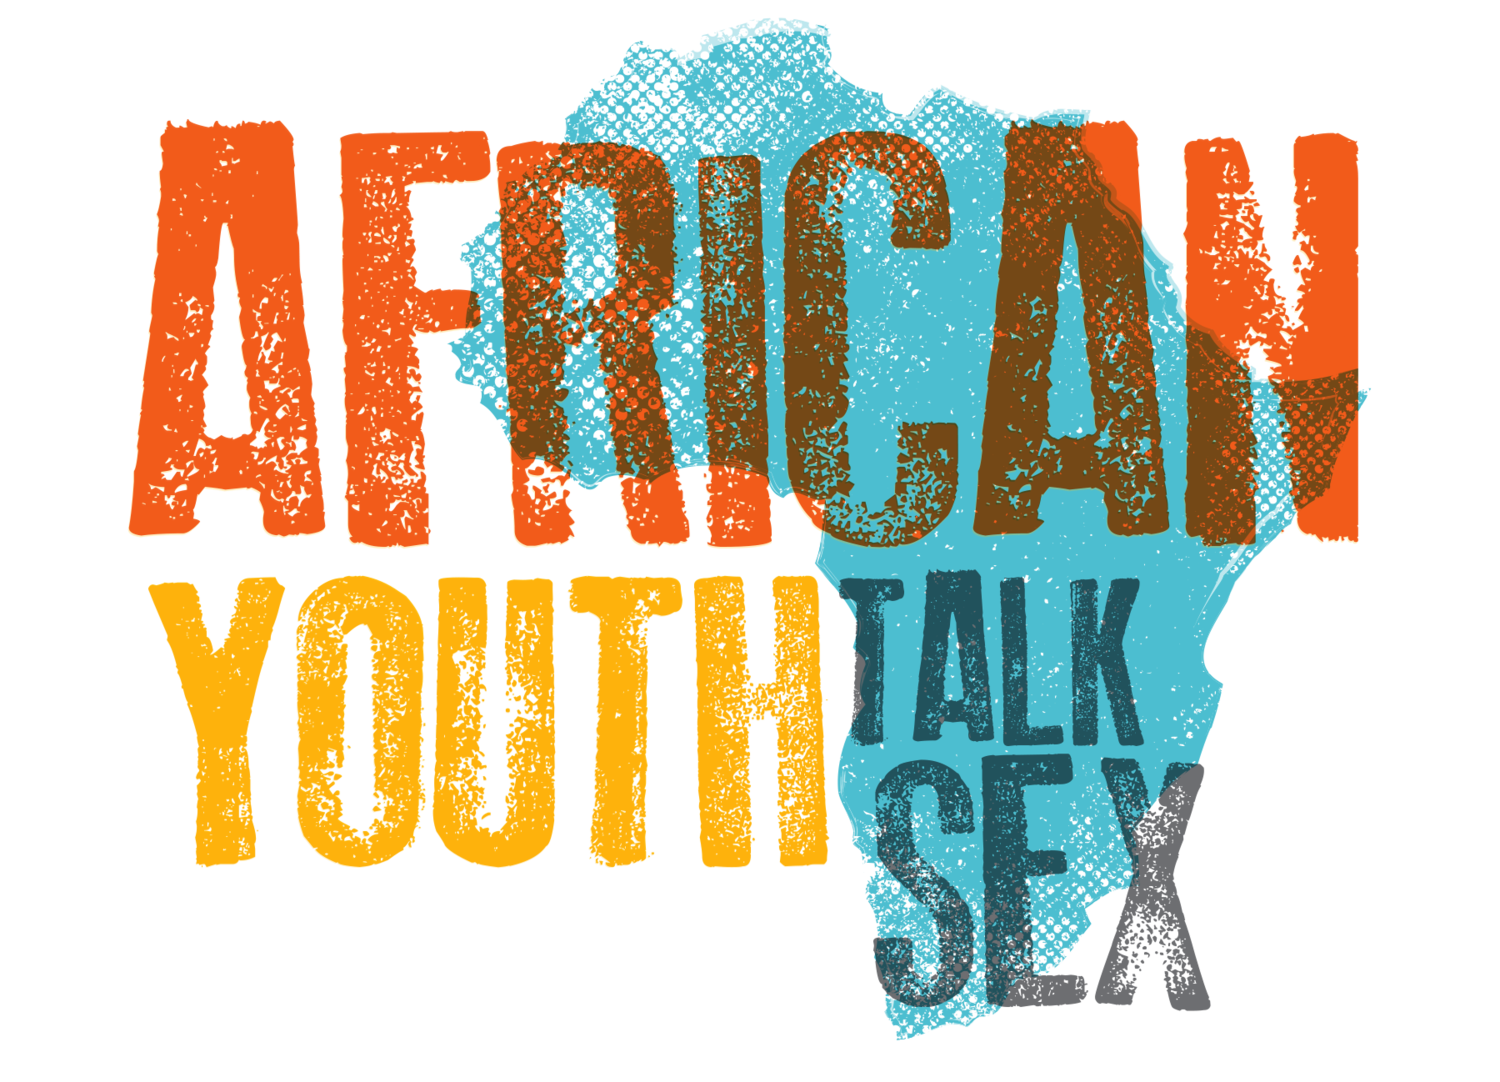 African Youth Talk Sex